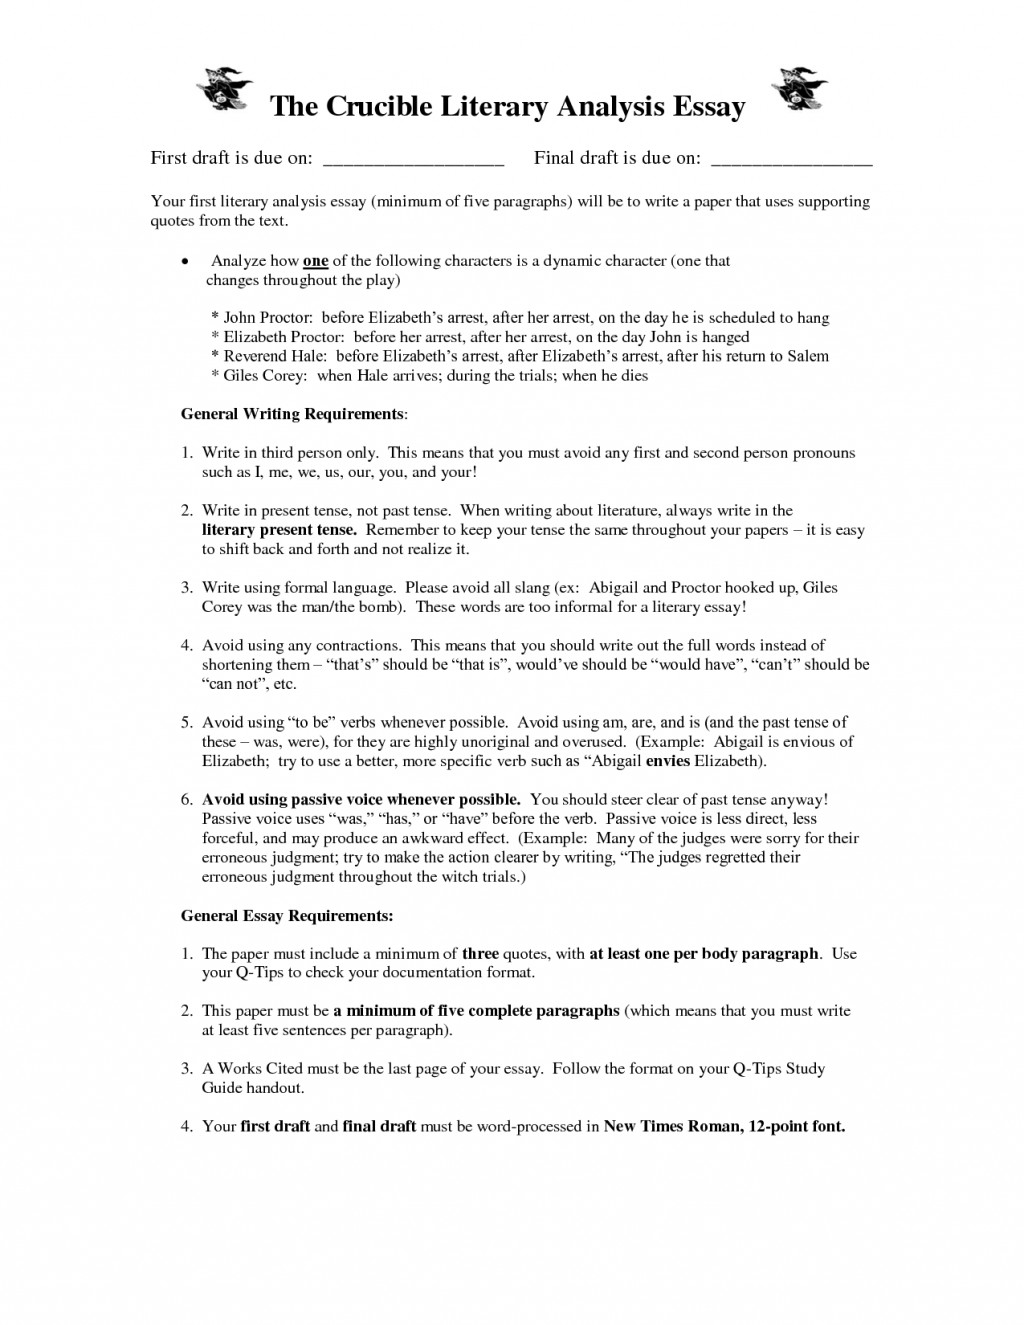 007 The Crucible Essay Topics Example Shocking Topic Sentences Analytical Writing Prompts Large